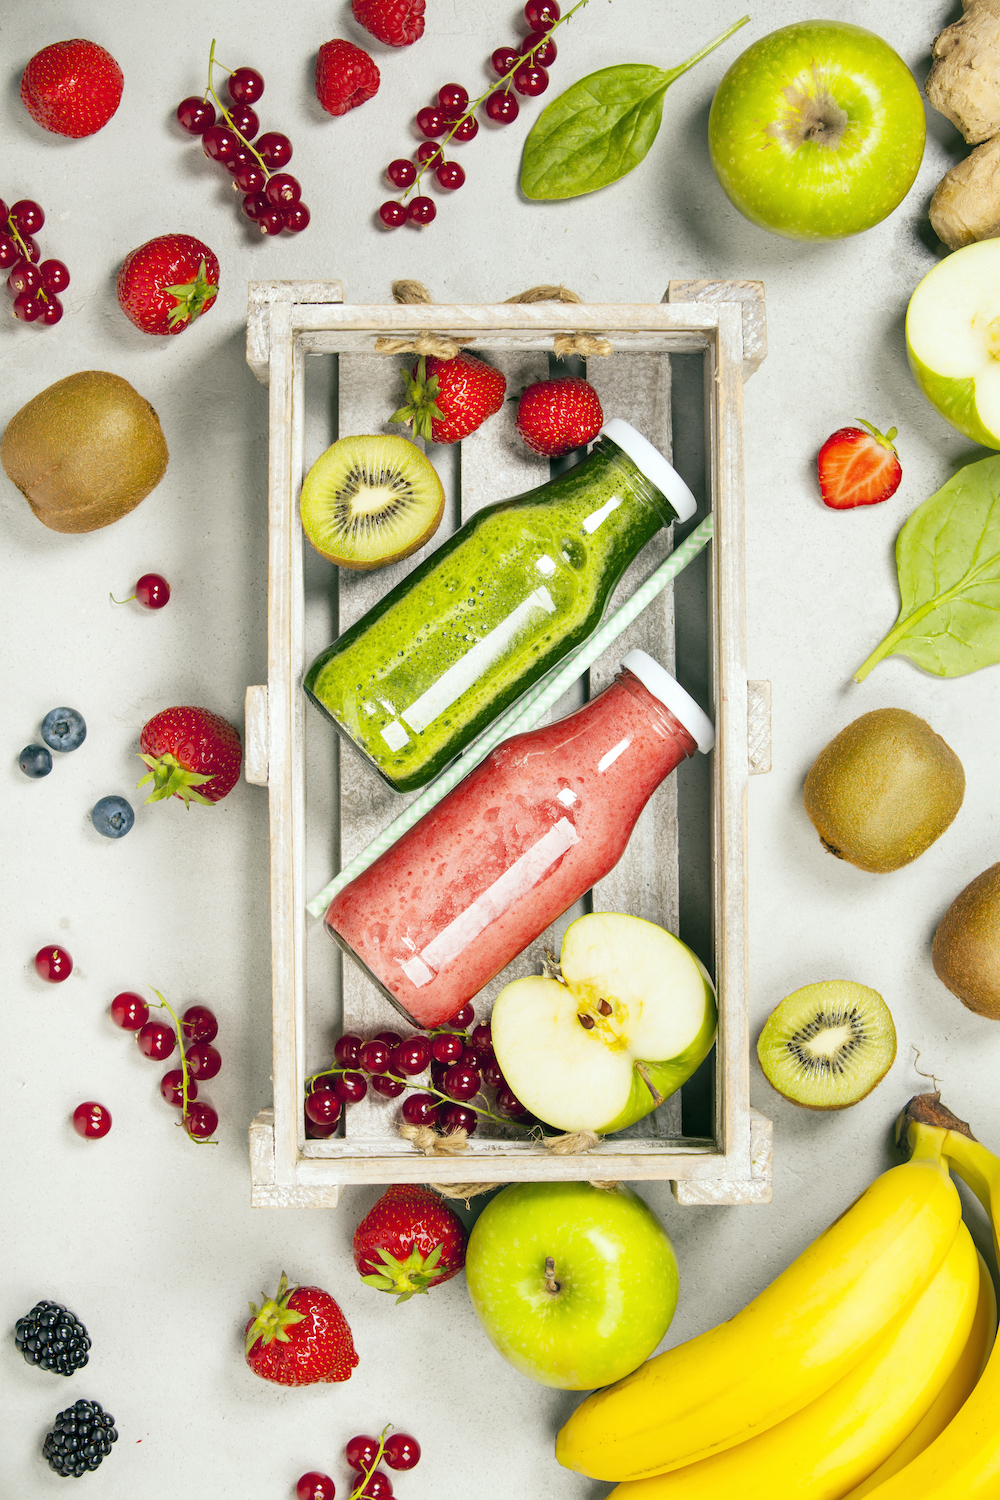 Why-Detox-at-all-Juice-Cleanse-Green-Smoothie-Diet-Week-Body-Reset-Raw-vegan-recipes-holistic-wellbeing-Rohtopia.jpg